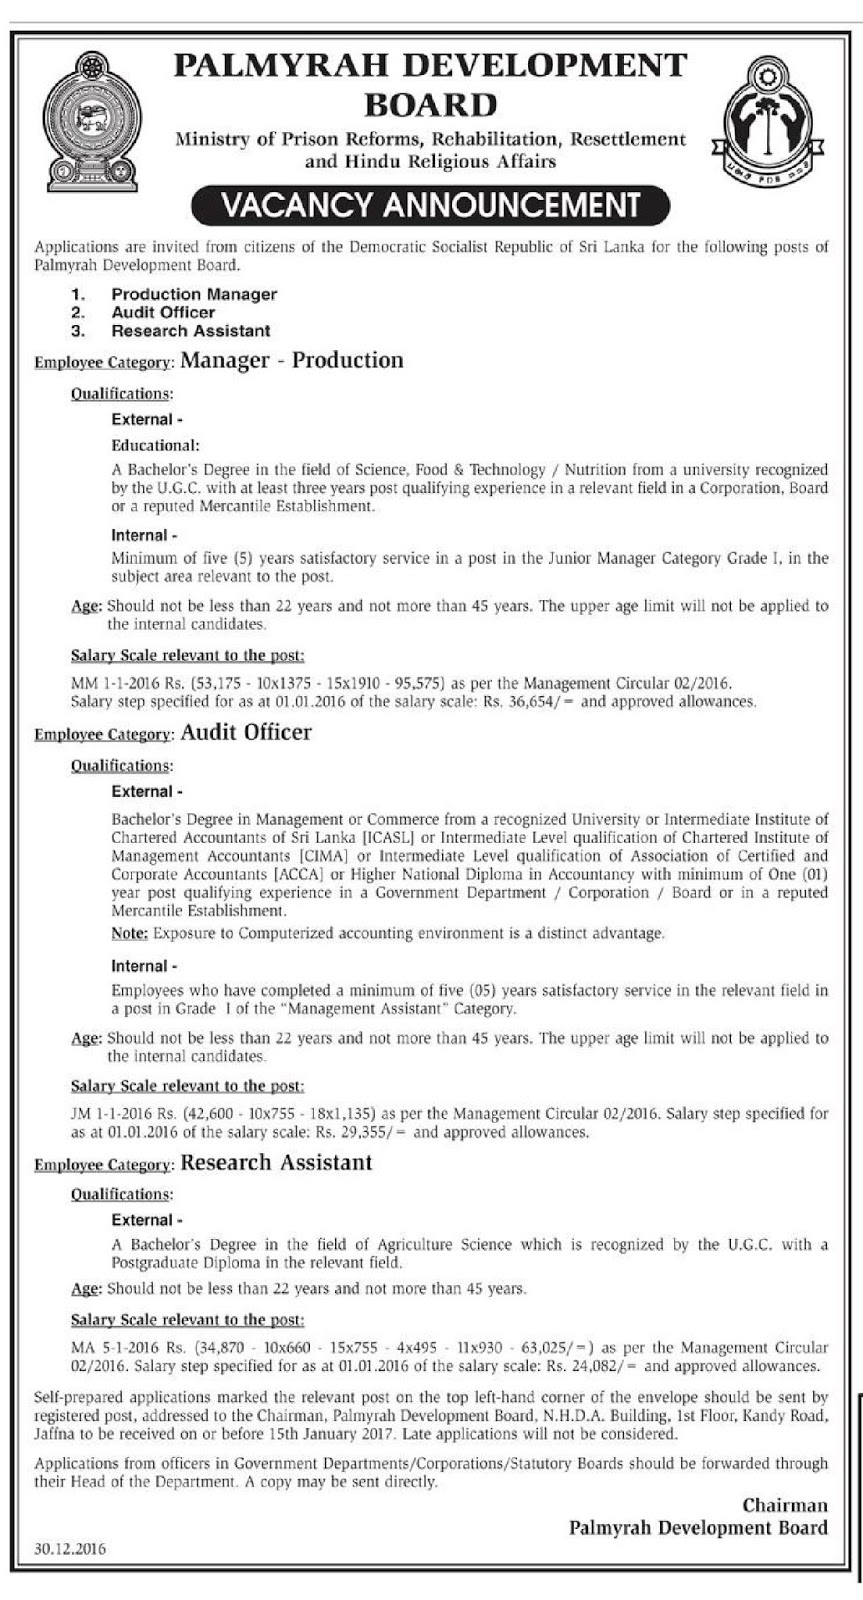 Sri Lankan Government Job Vacancies at Palmyrah Development Board for Production Manager, Audit Officer, Research Assistant